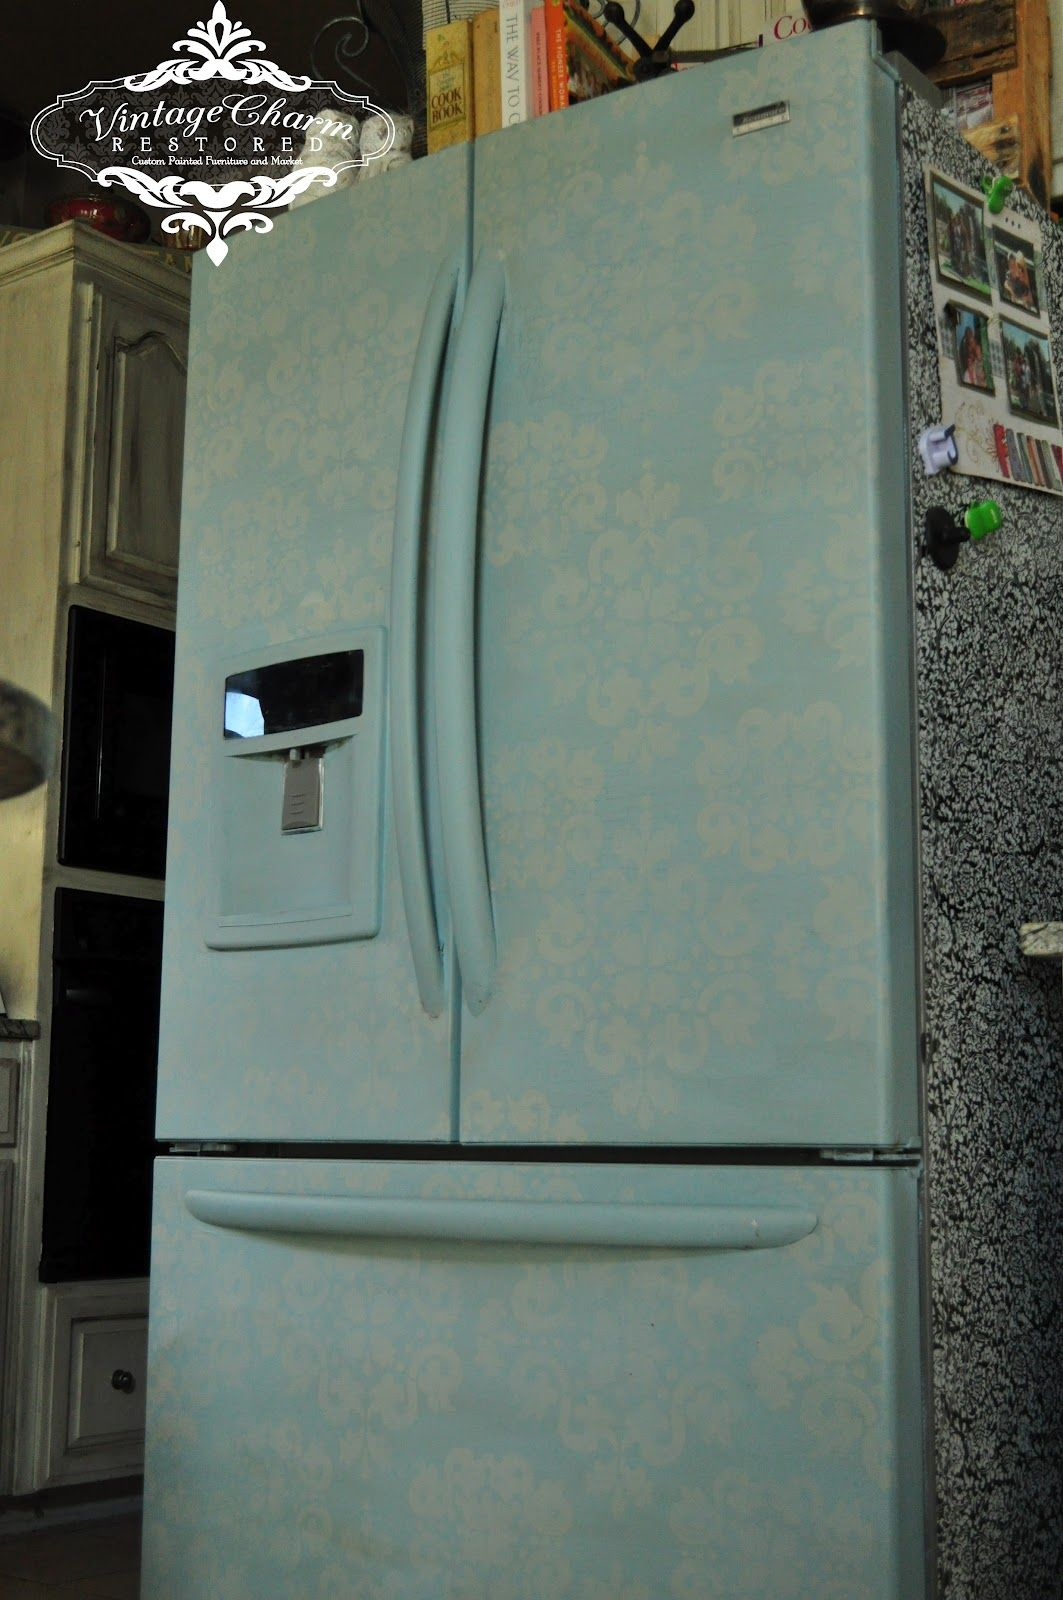 A Painted Fridge? You did What??